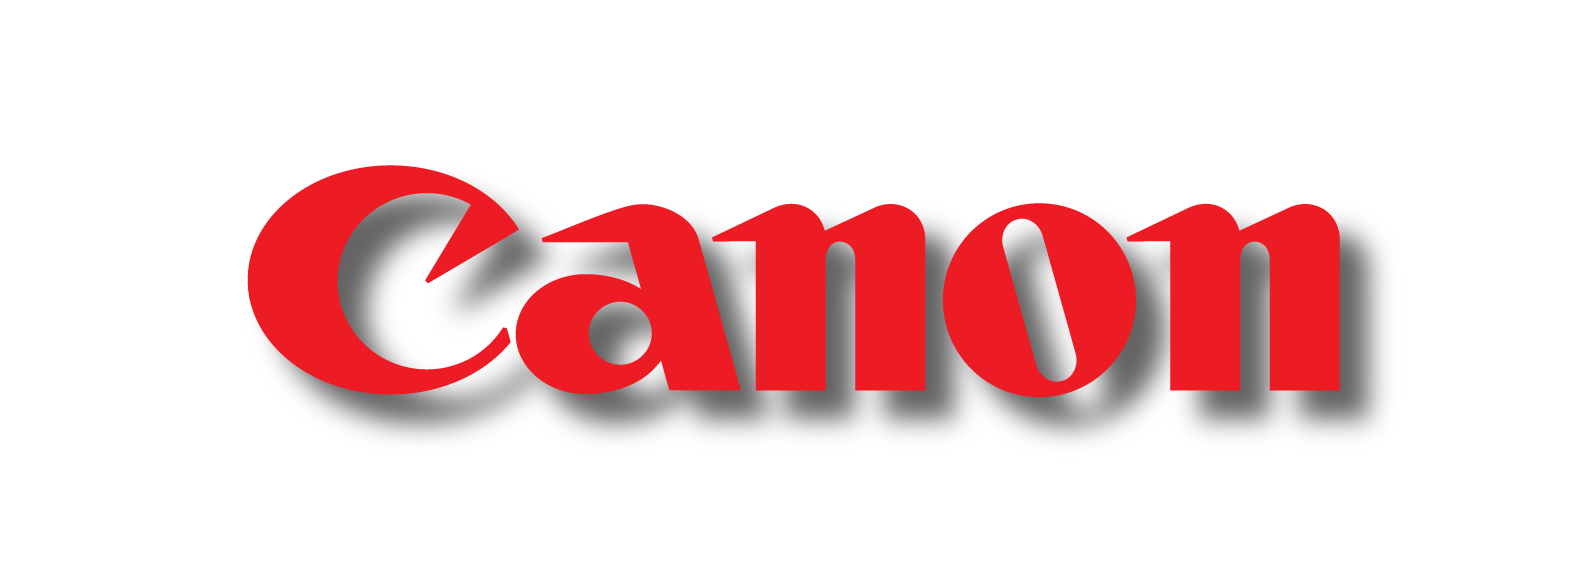 Canon Logo - Canon Eps, Transparent background PNG HD thumbnail